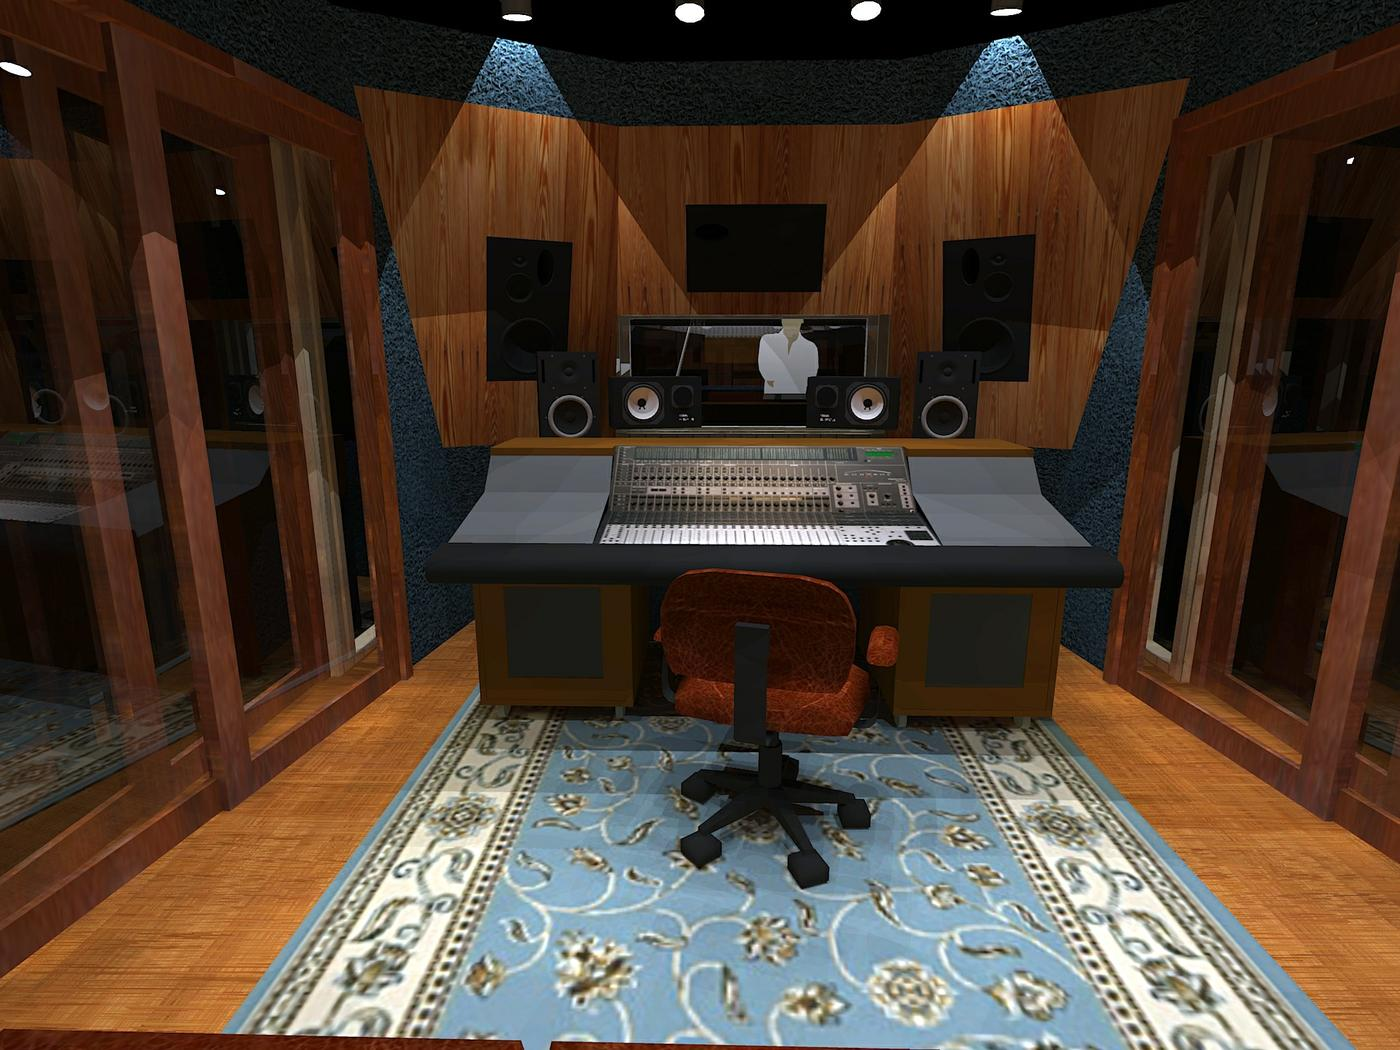 Terrific 17 Best Images About Recording Studio Design On Pinterest Largest Home Design Picture Inspirations Pitcheantrous